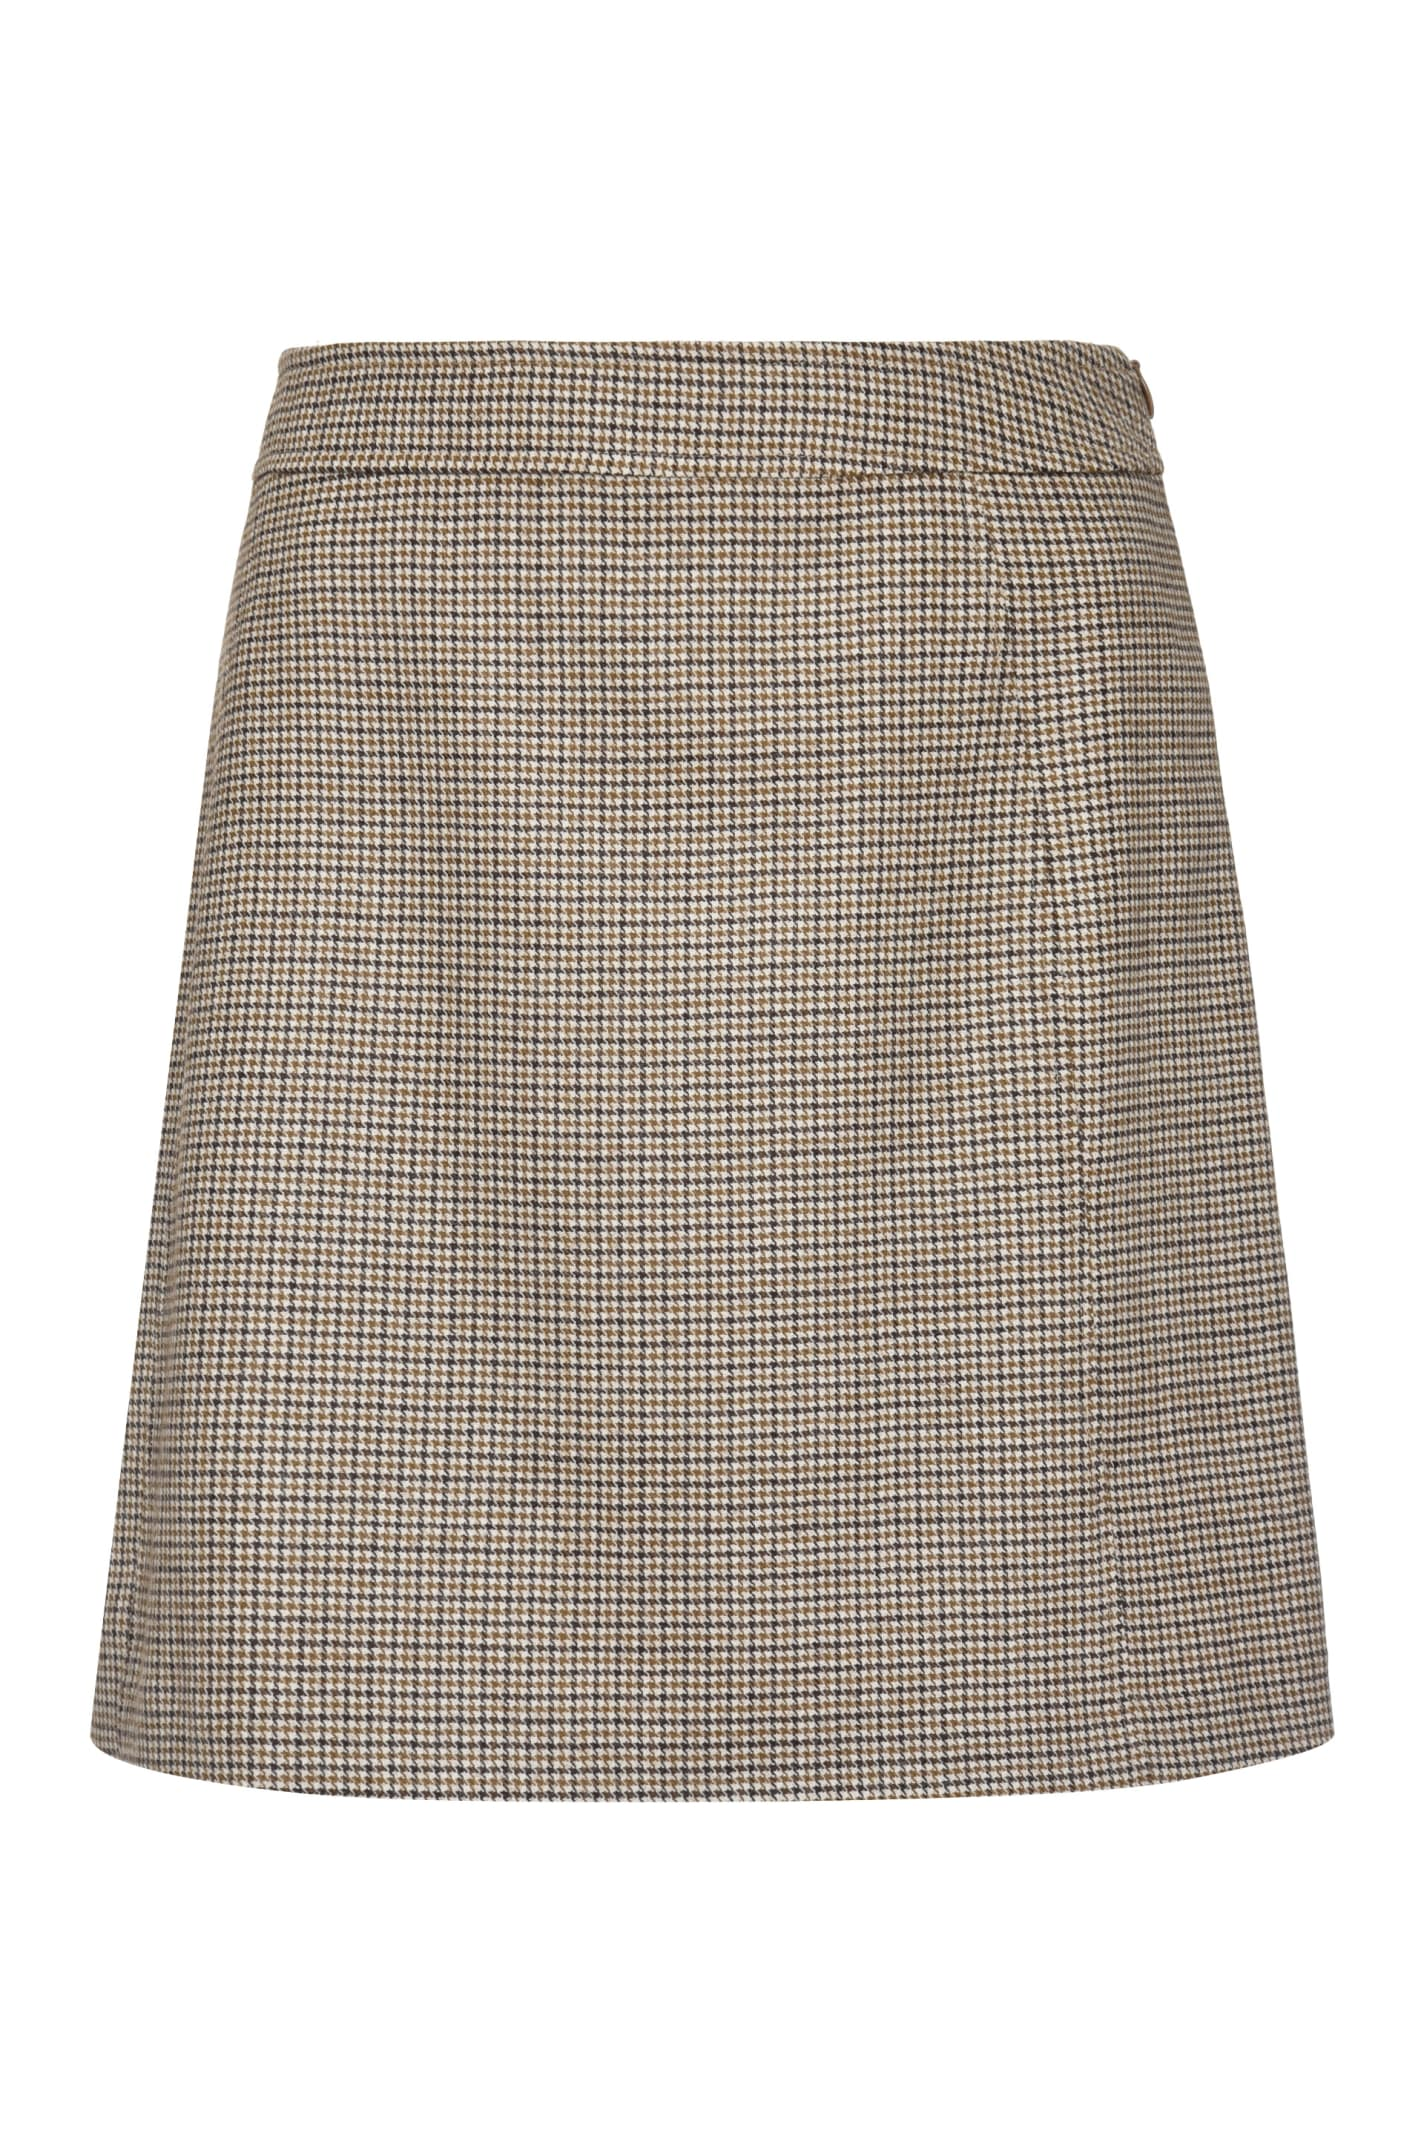 A.p.c. Wools SONIA CHECKED WOOL MINI SKIRT